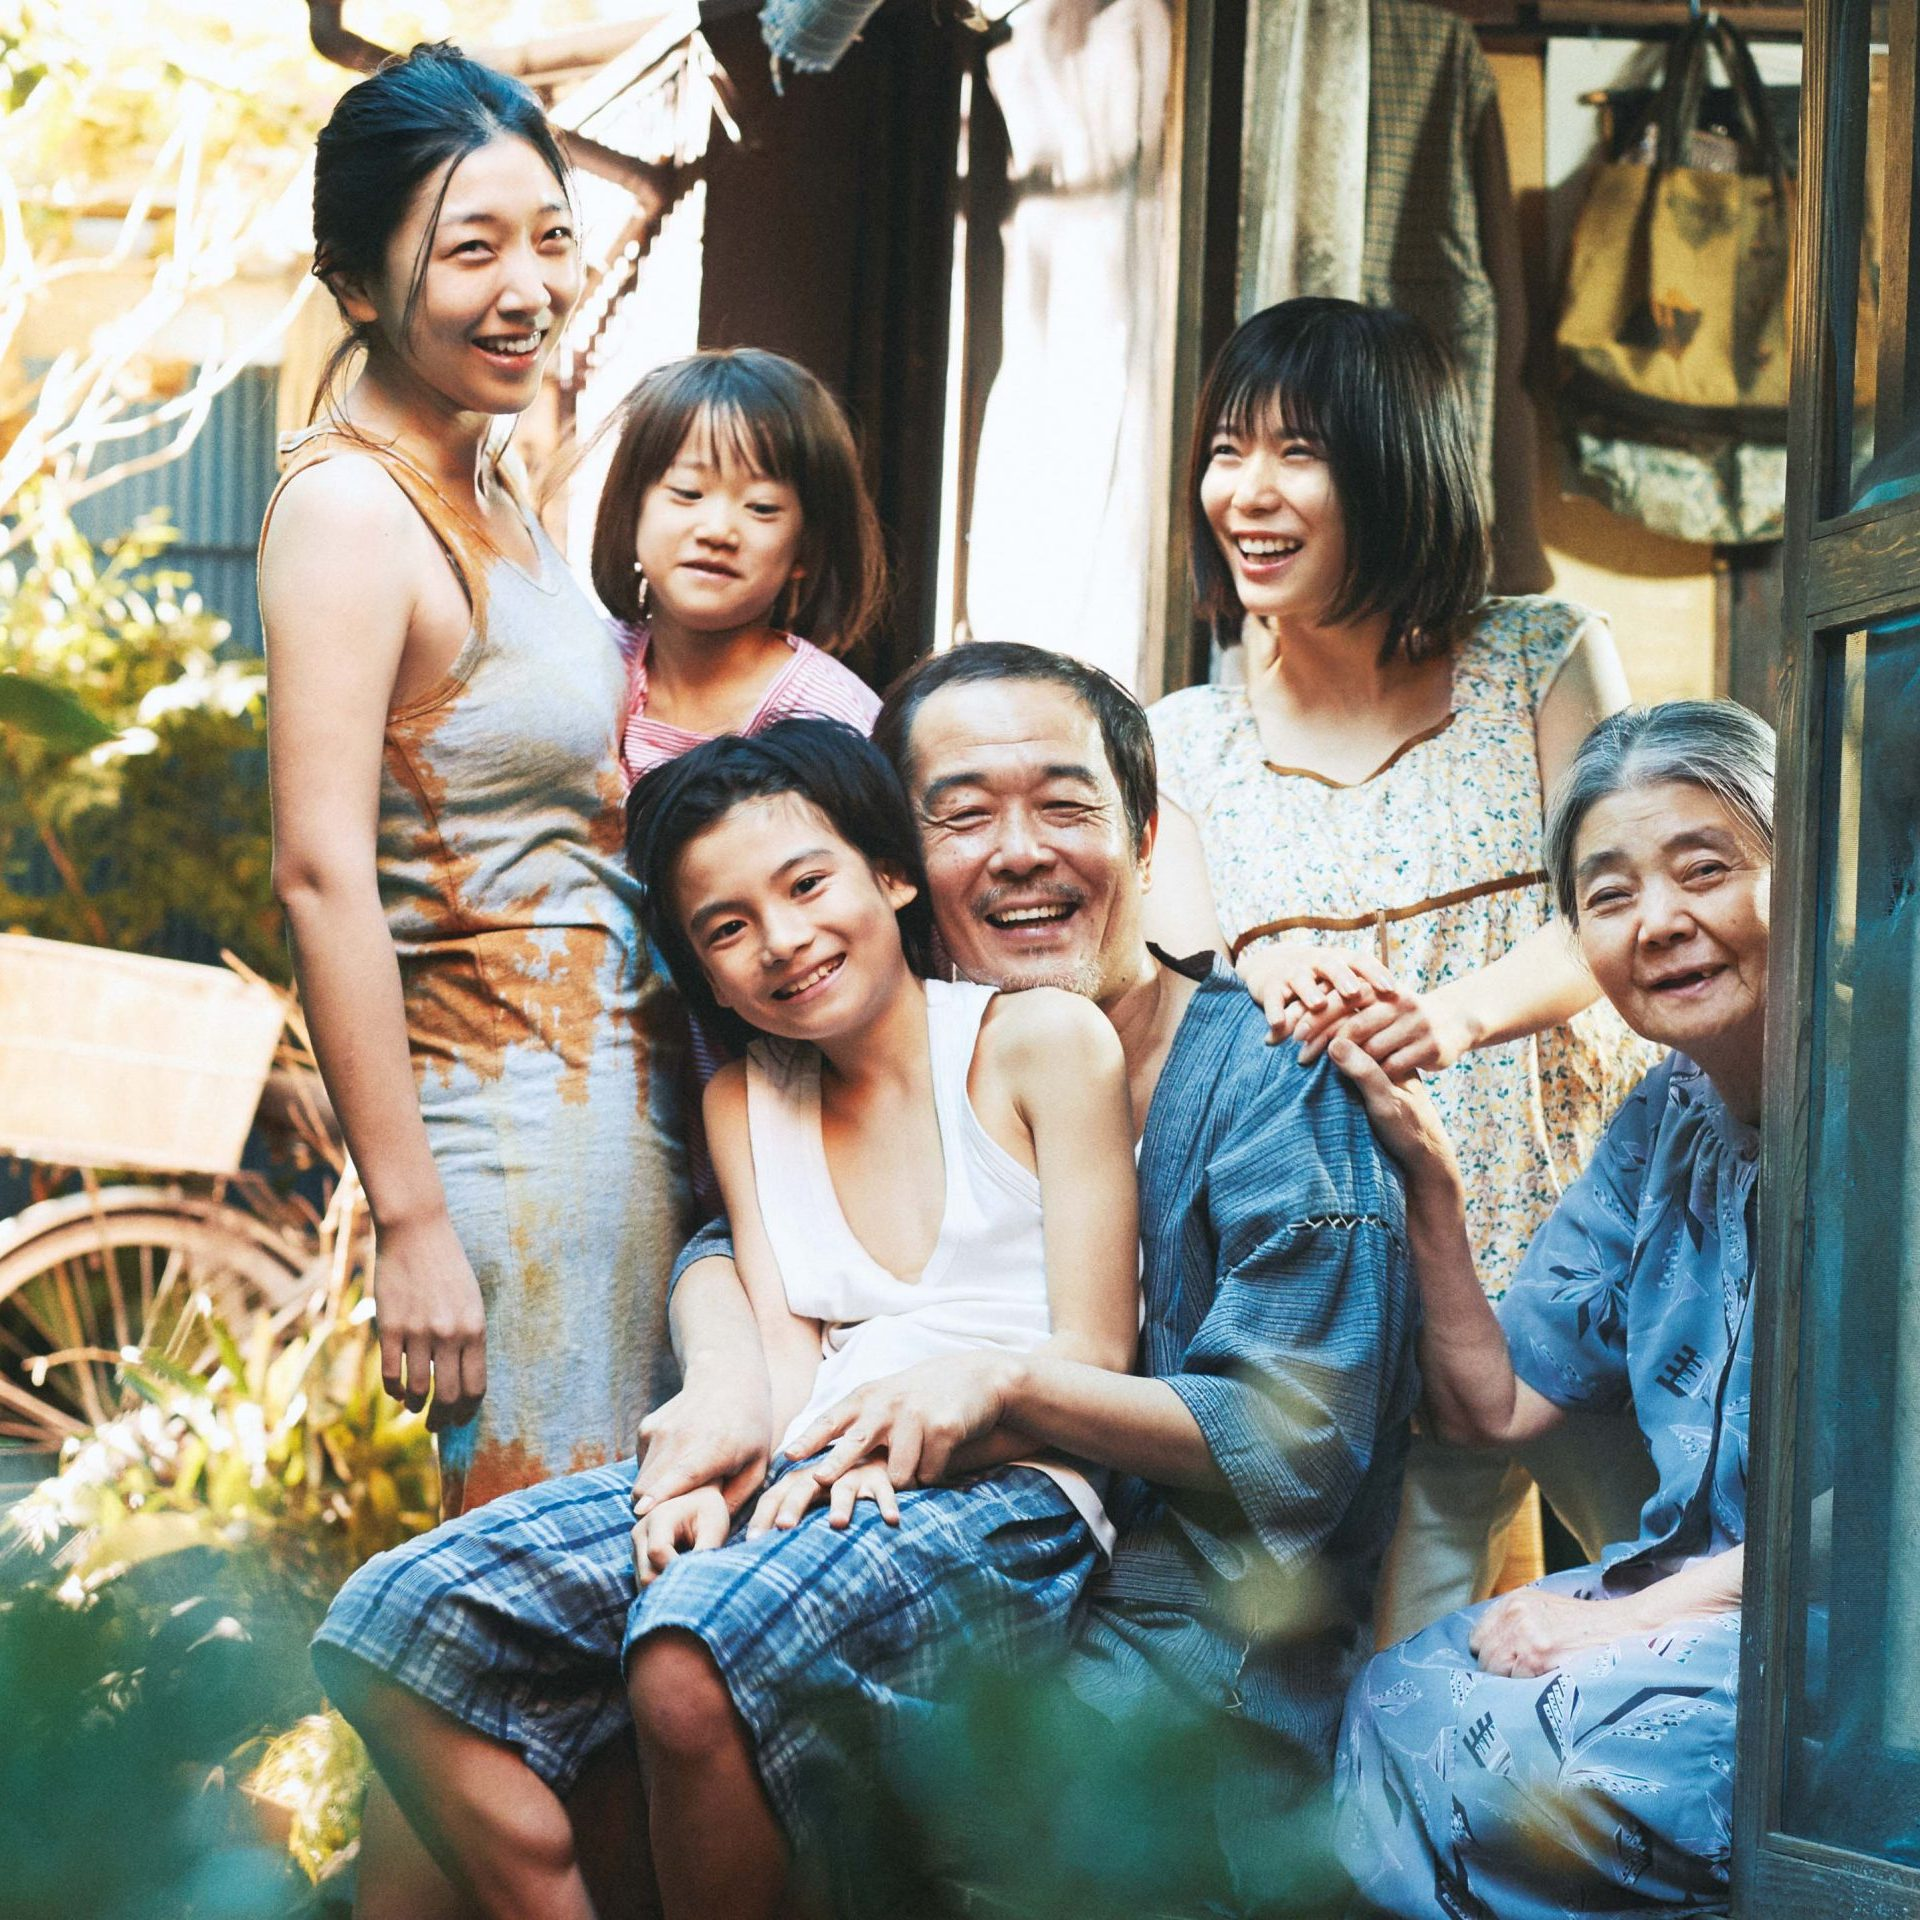 Cover photo of the Shoplifters movie, featuring members of the family in the movie